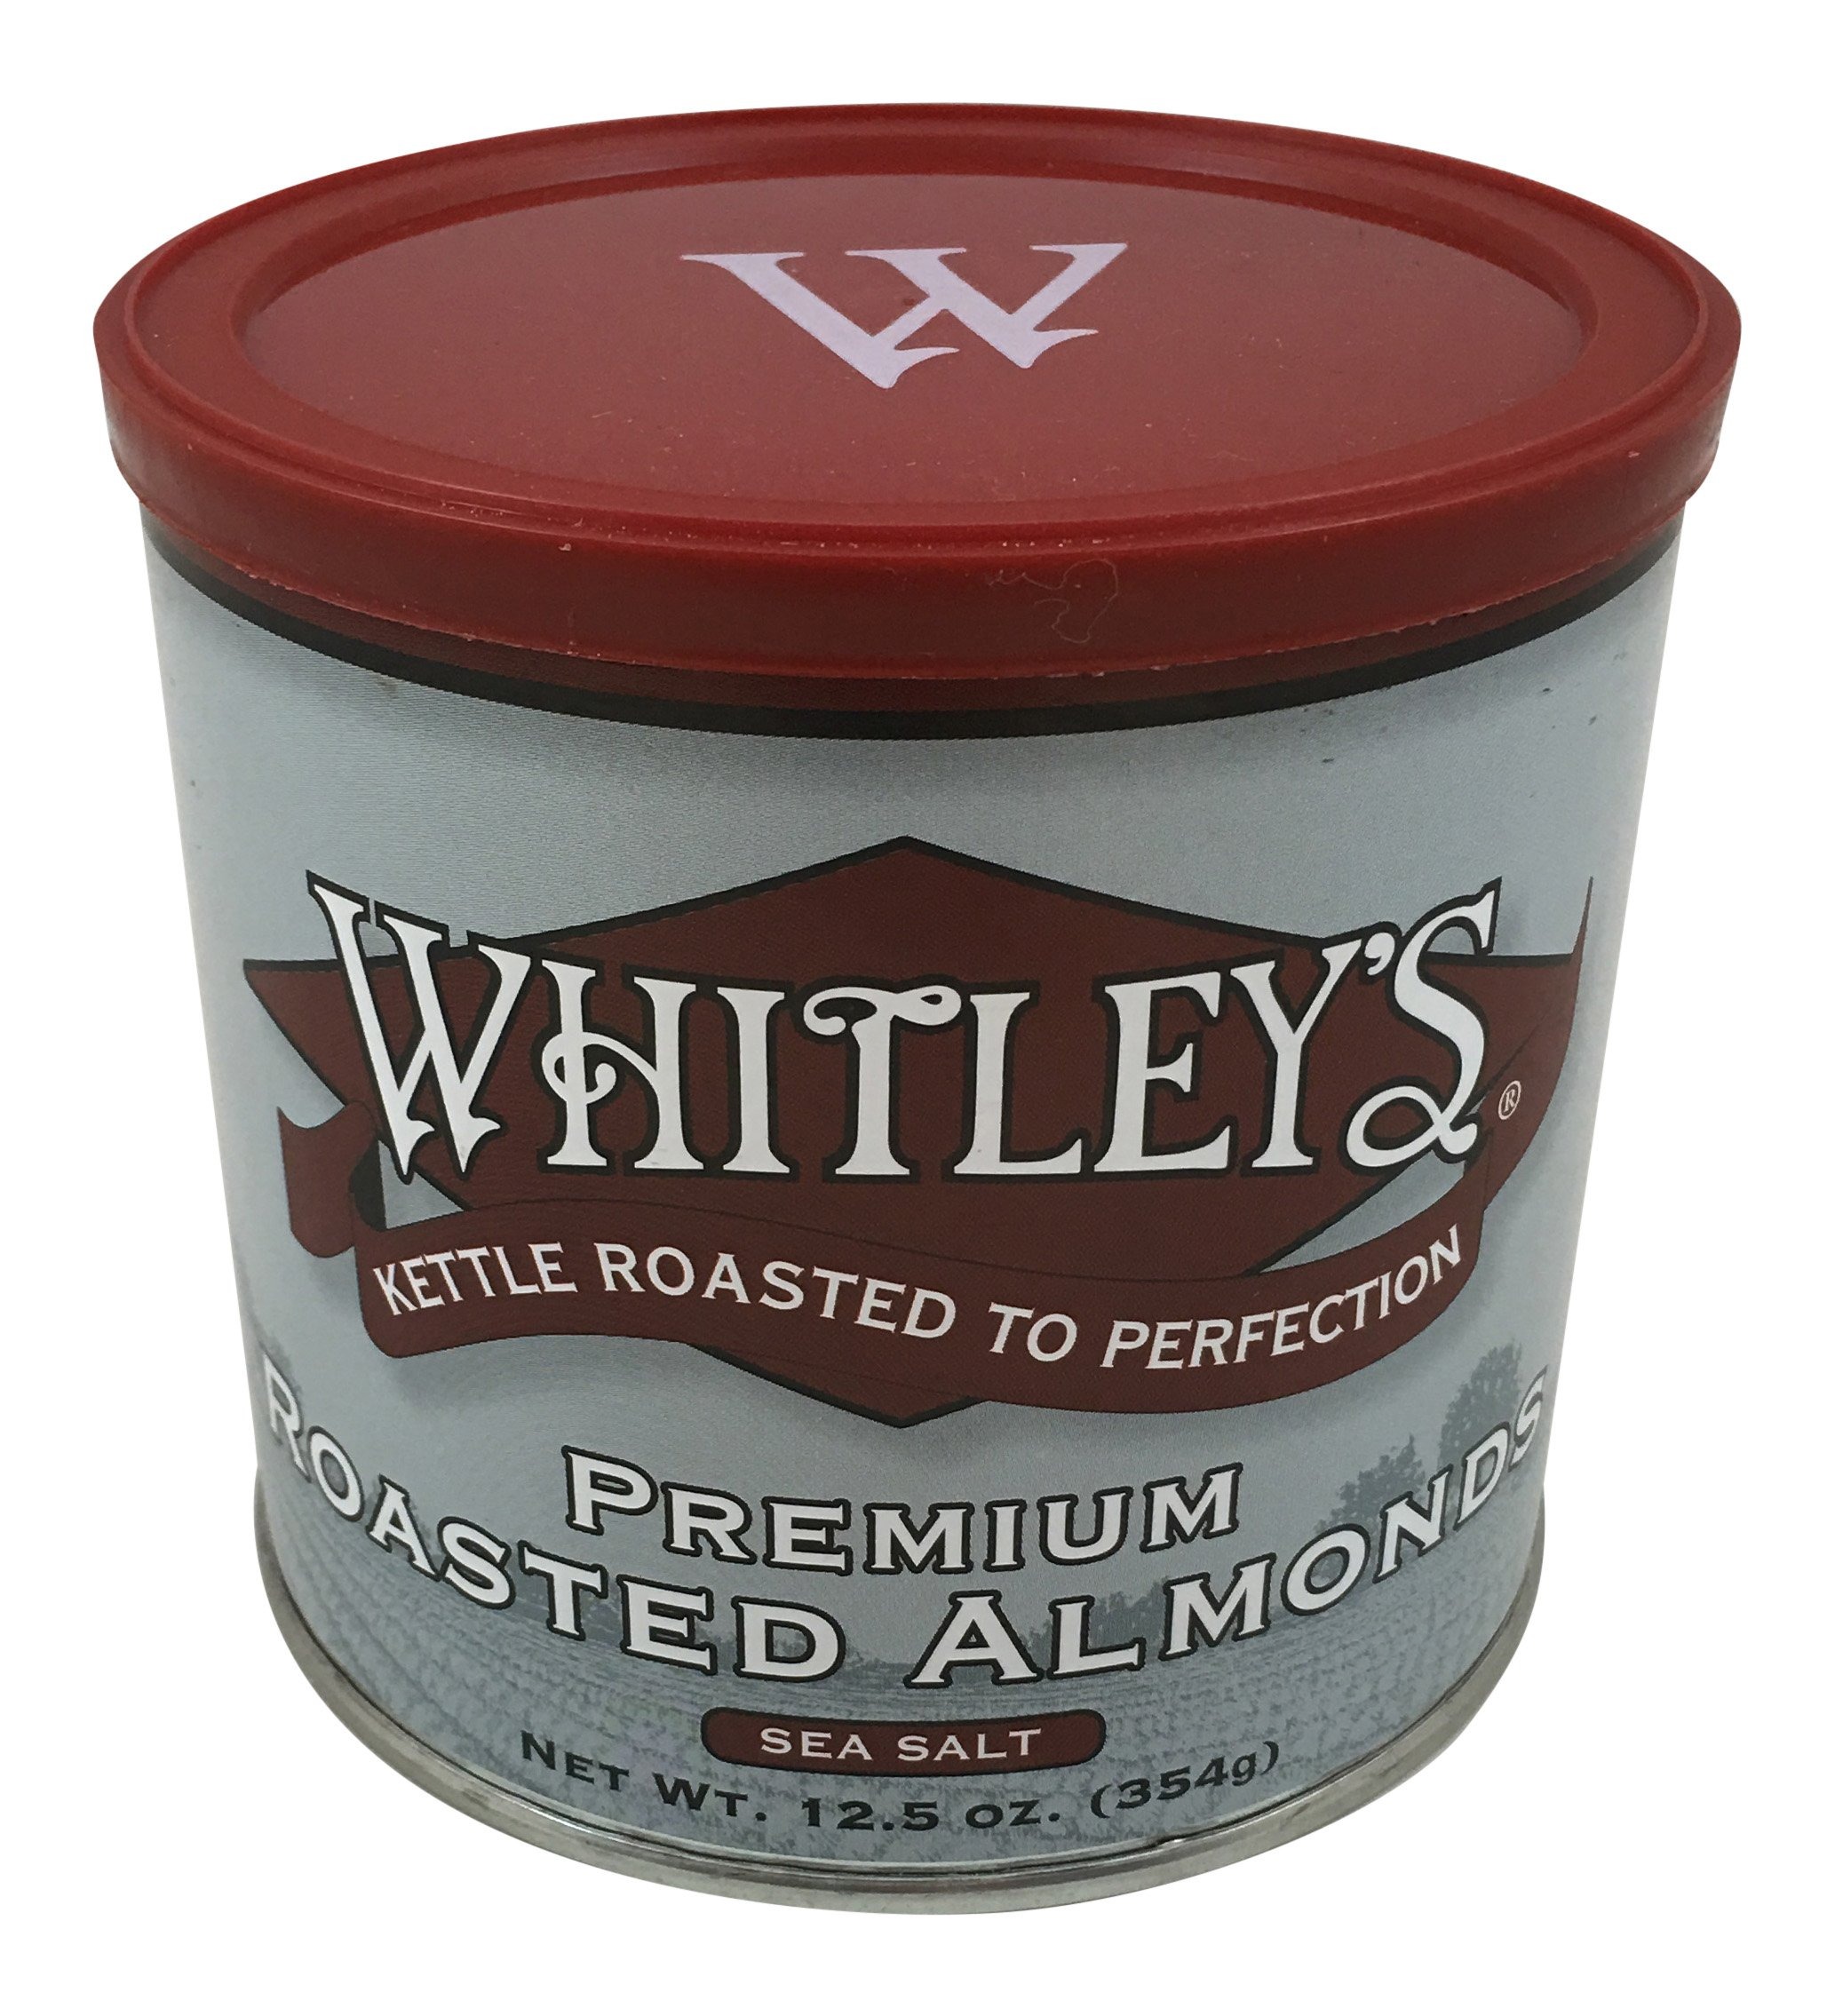 Whitley's Premium Kettle Roasted Almonds with Sea Salt 12.5 Oz.